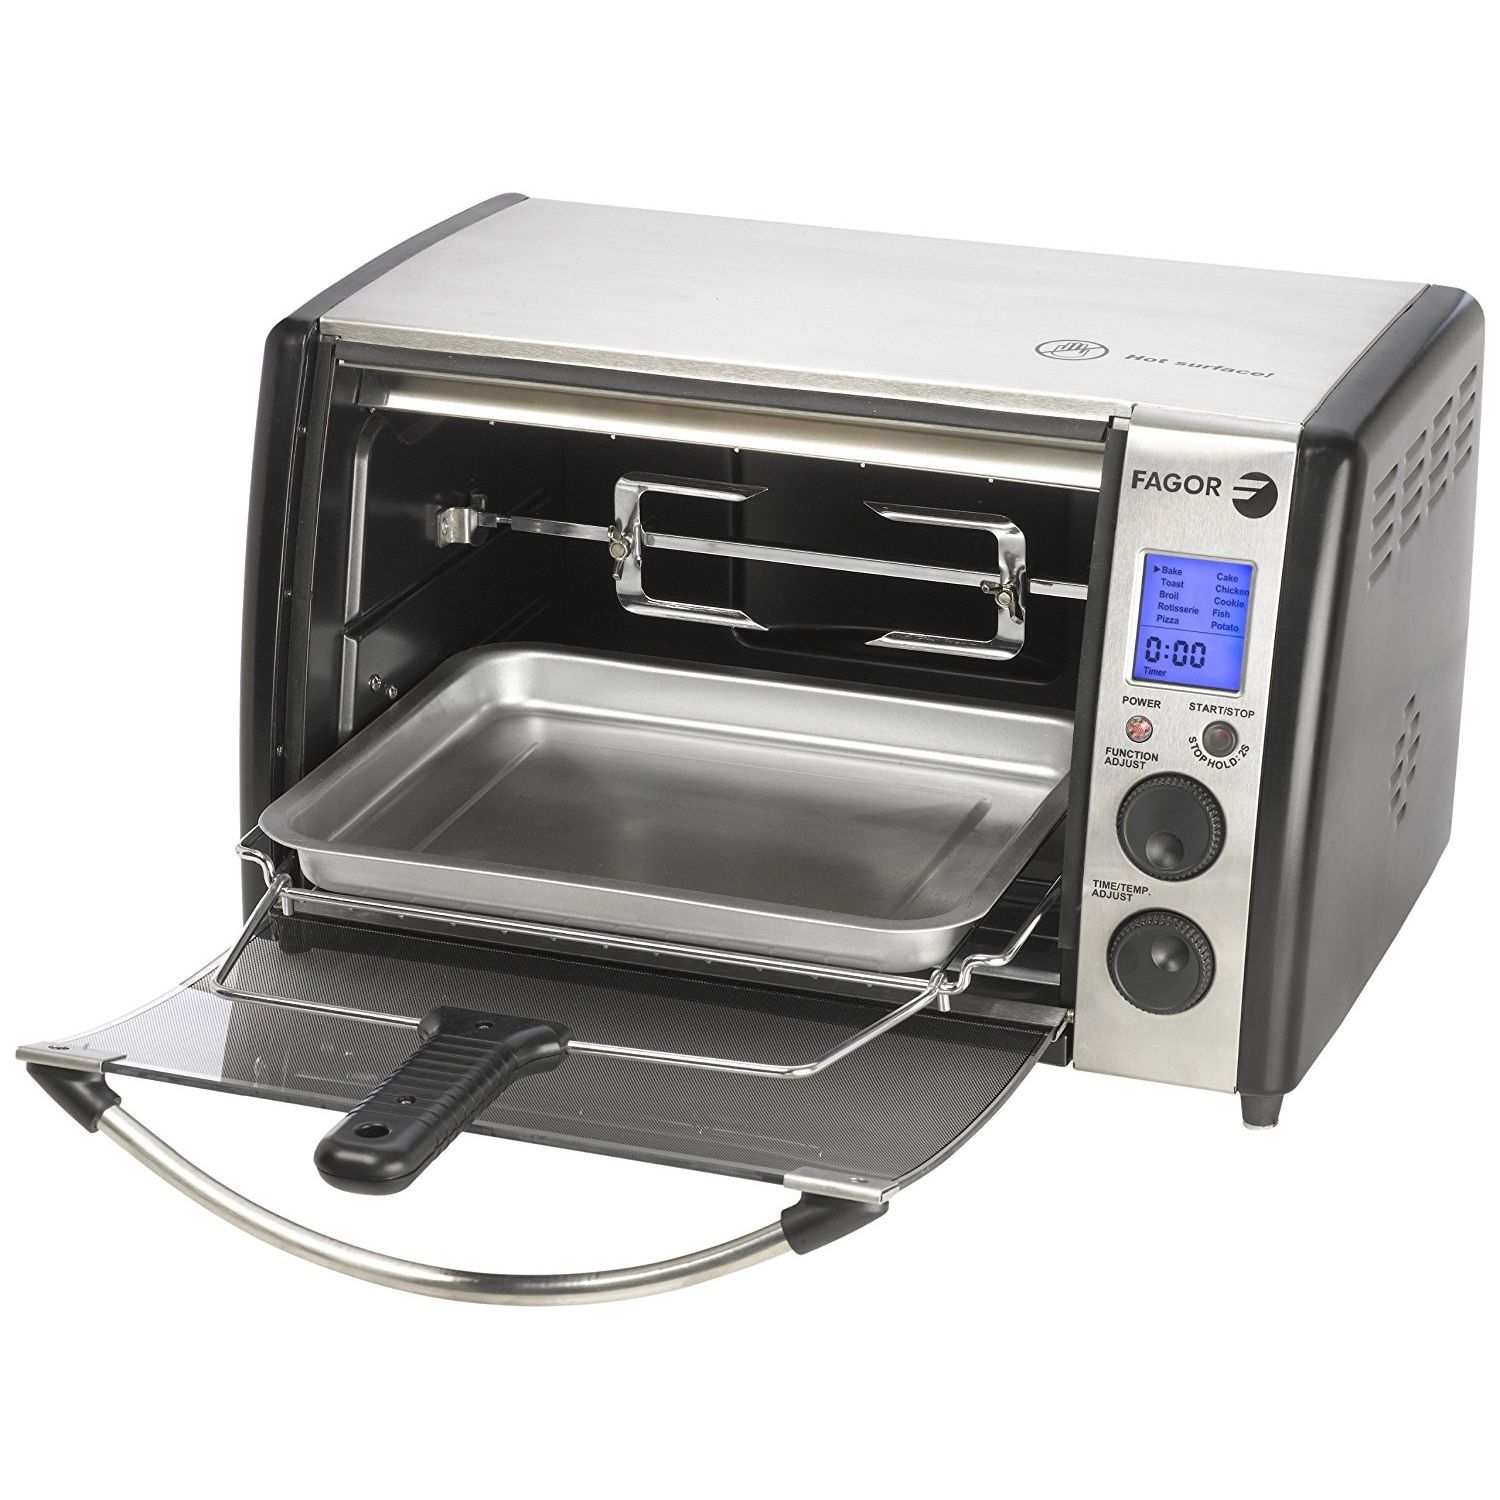 Fagor 670041770 Dual Technology Digital Toaster Oven